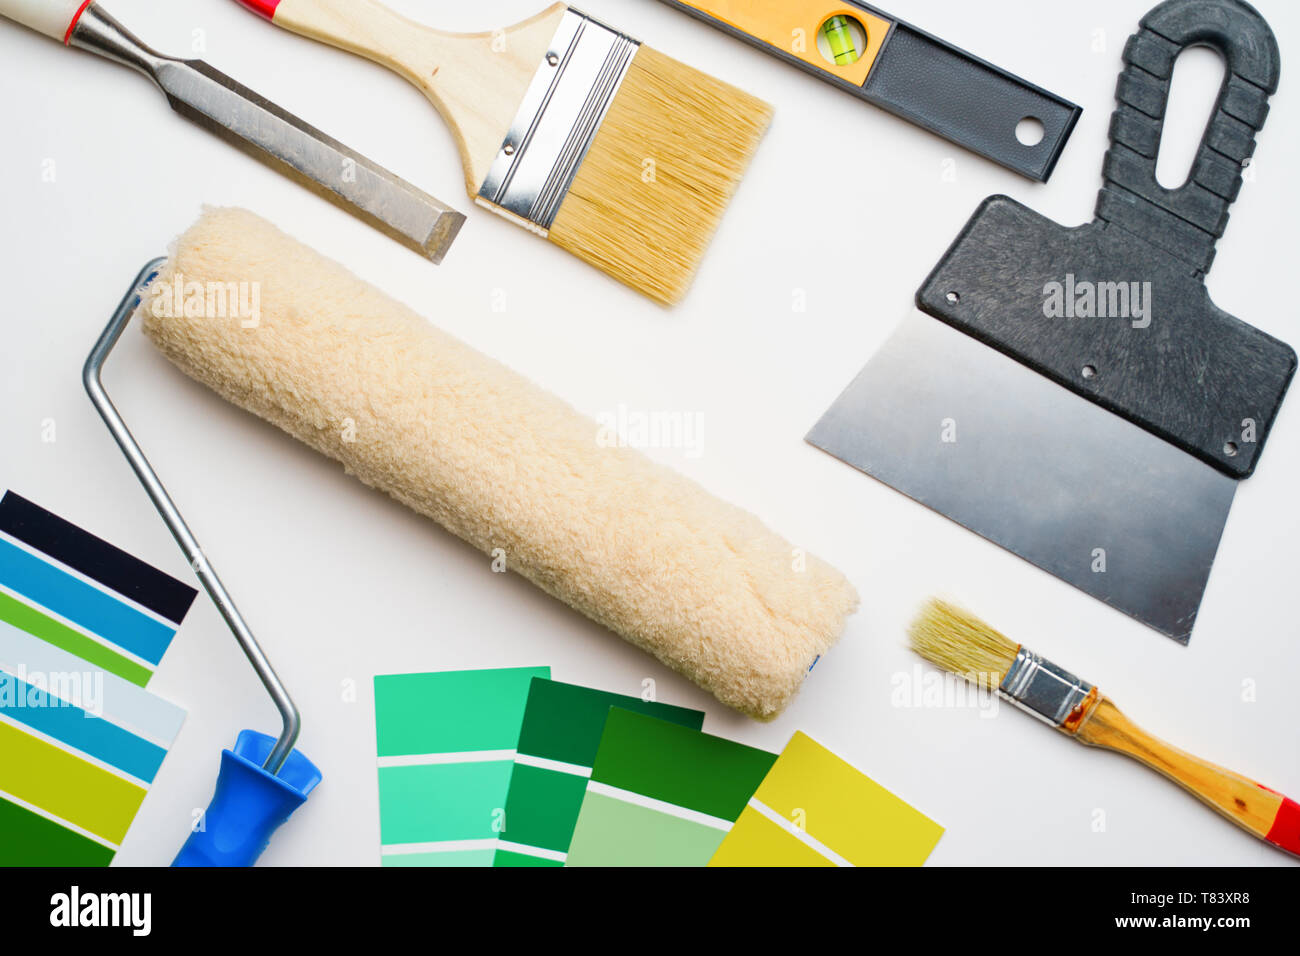 Photo of palette with blue and green colors, roller, brushes, trowel - Stock Image